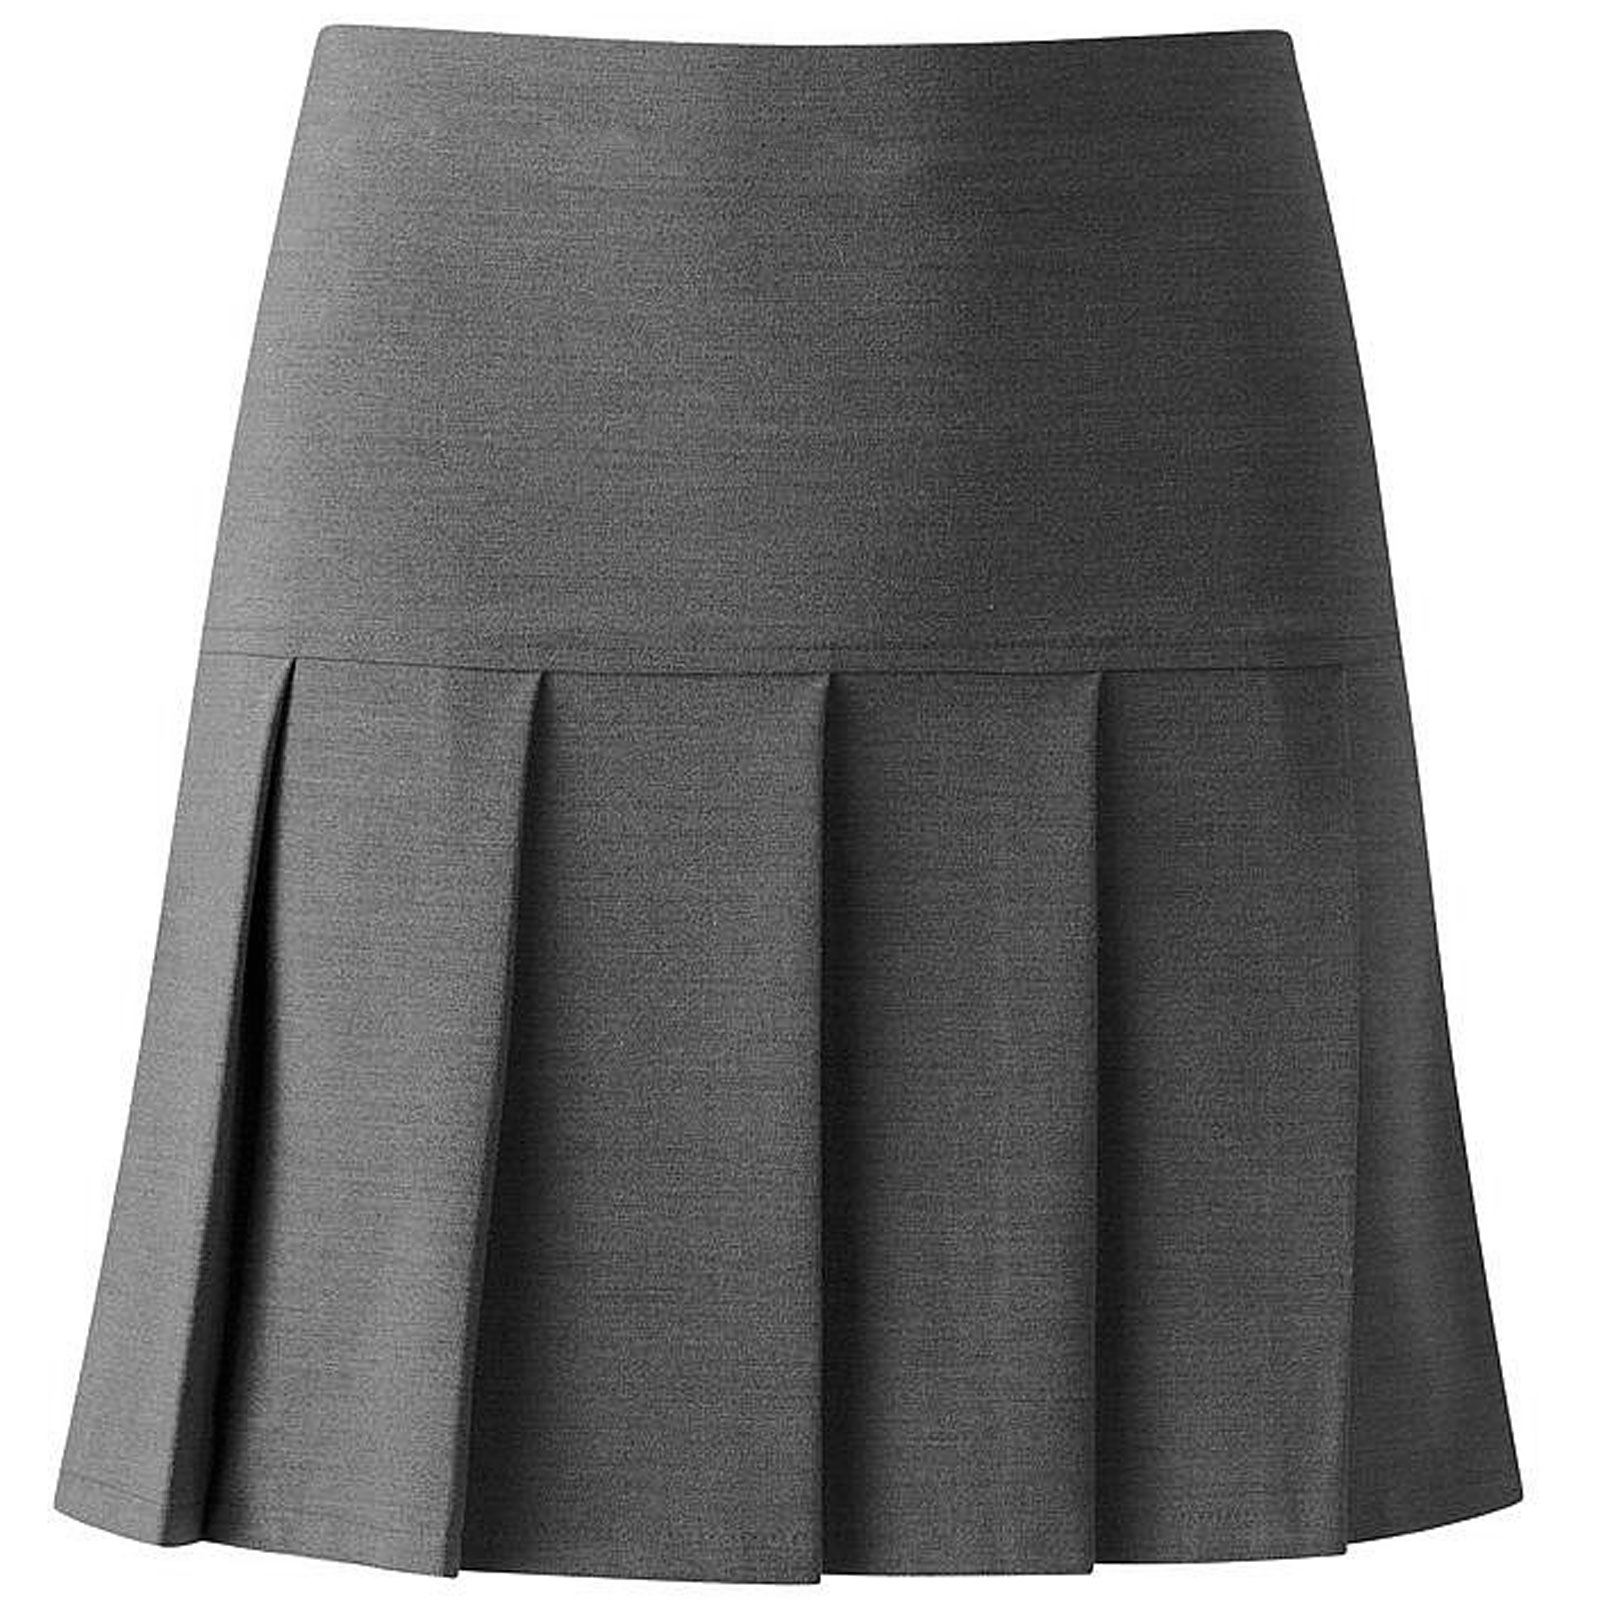 Girls all round pleated drop high waist kids school uniform skirts 5 picture 2 of 2 publicscrutiny Gallery